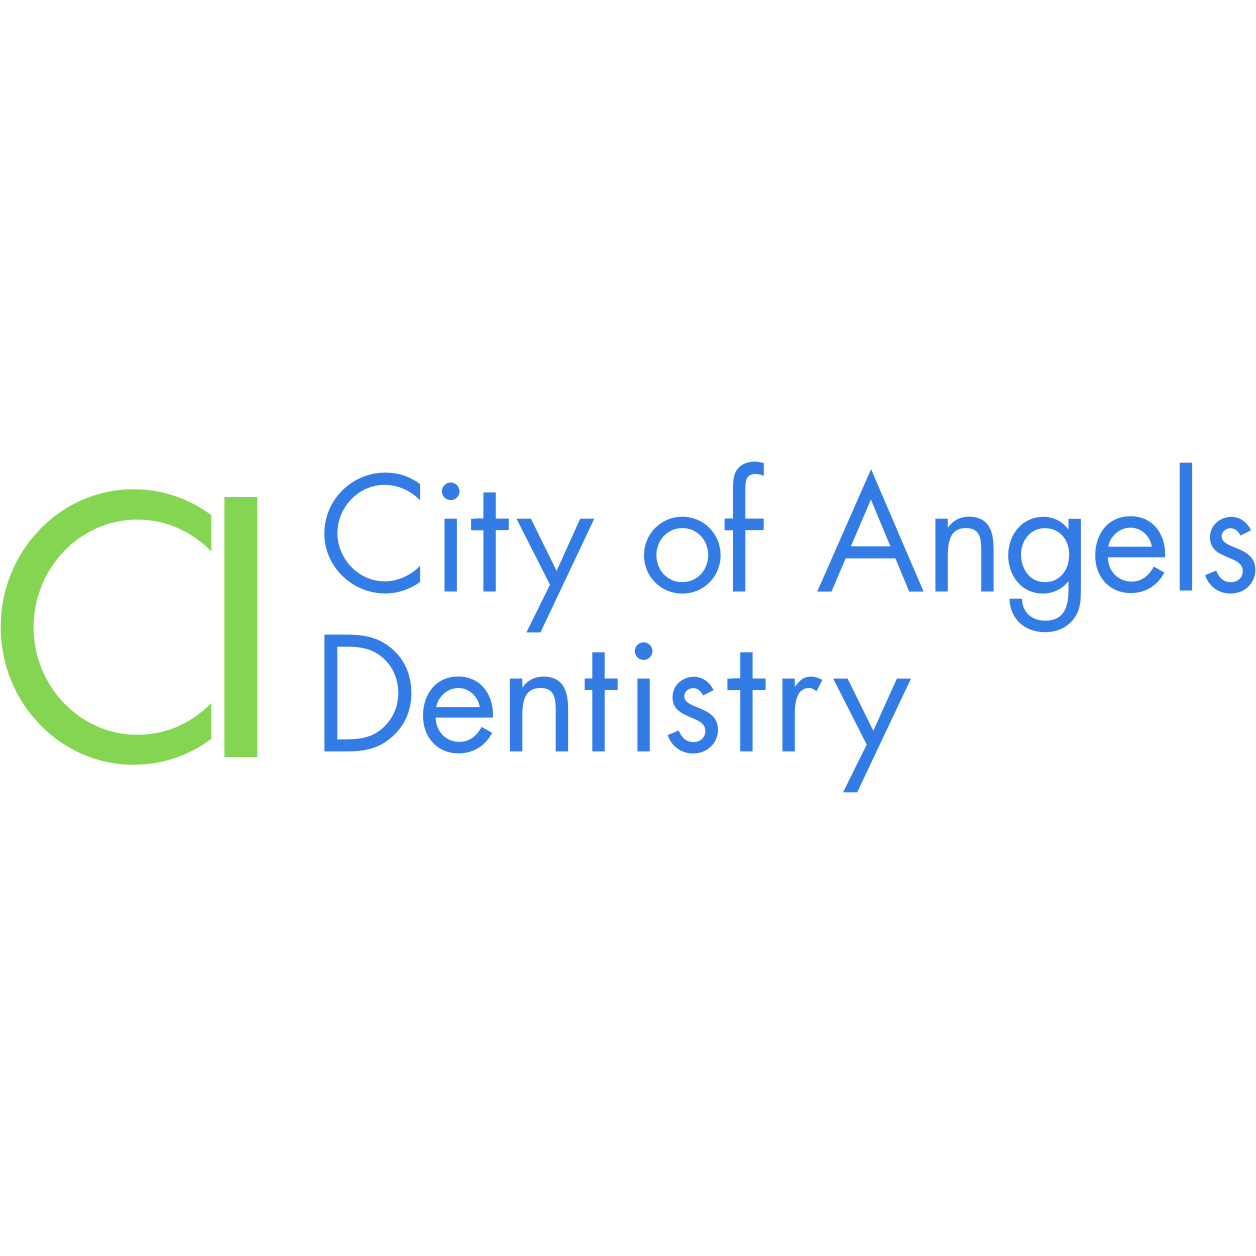 City of Angels Dentistry - Los Angeles, CA 90017 - (213)908-2003 | ShowMeLocal.com